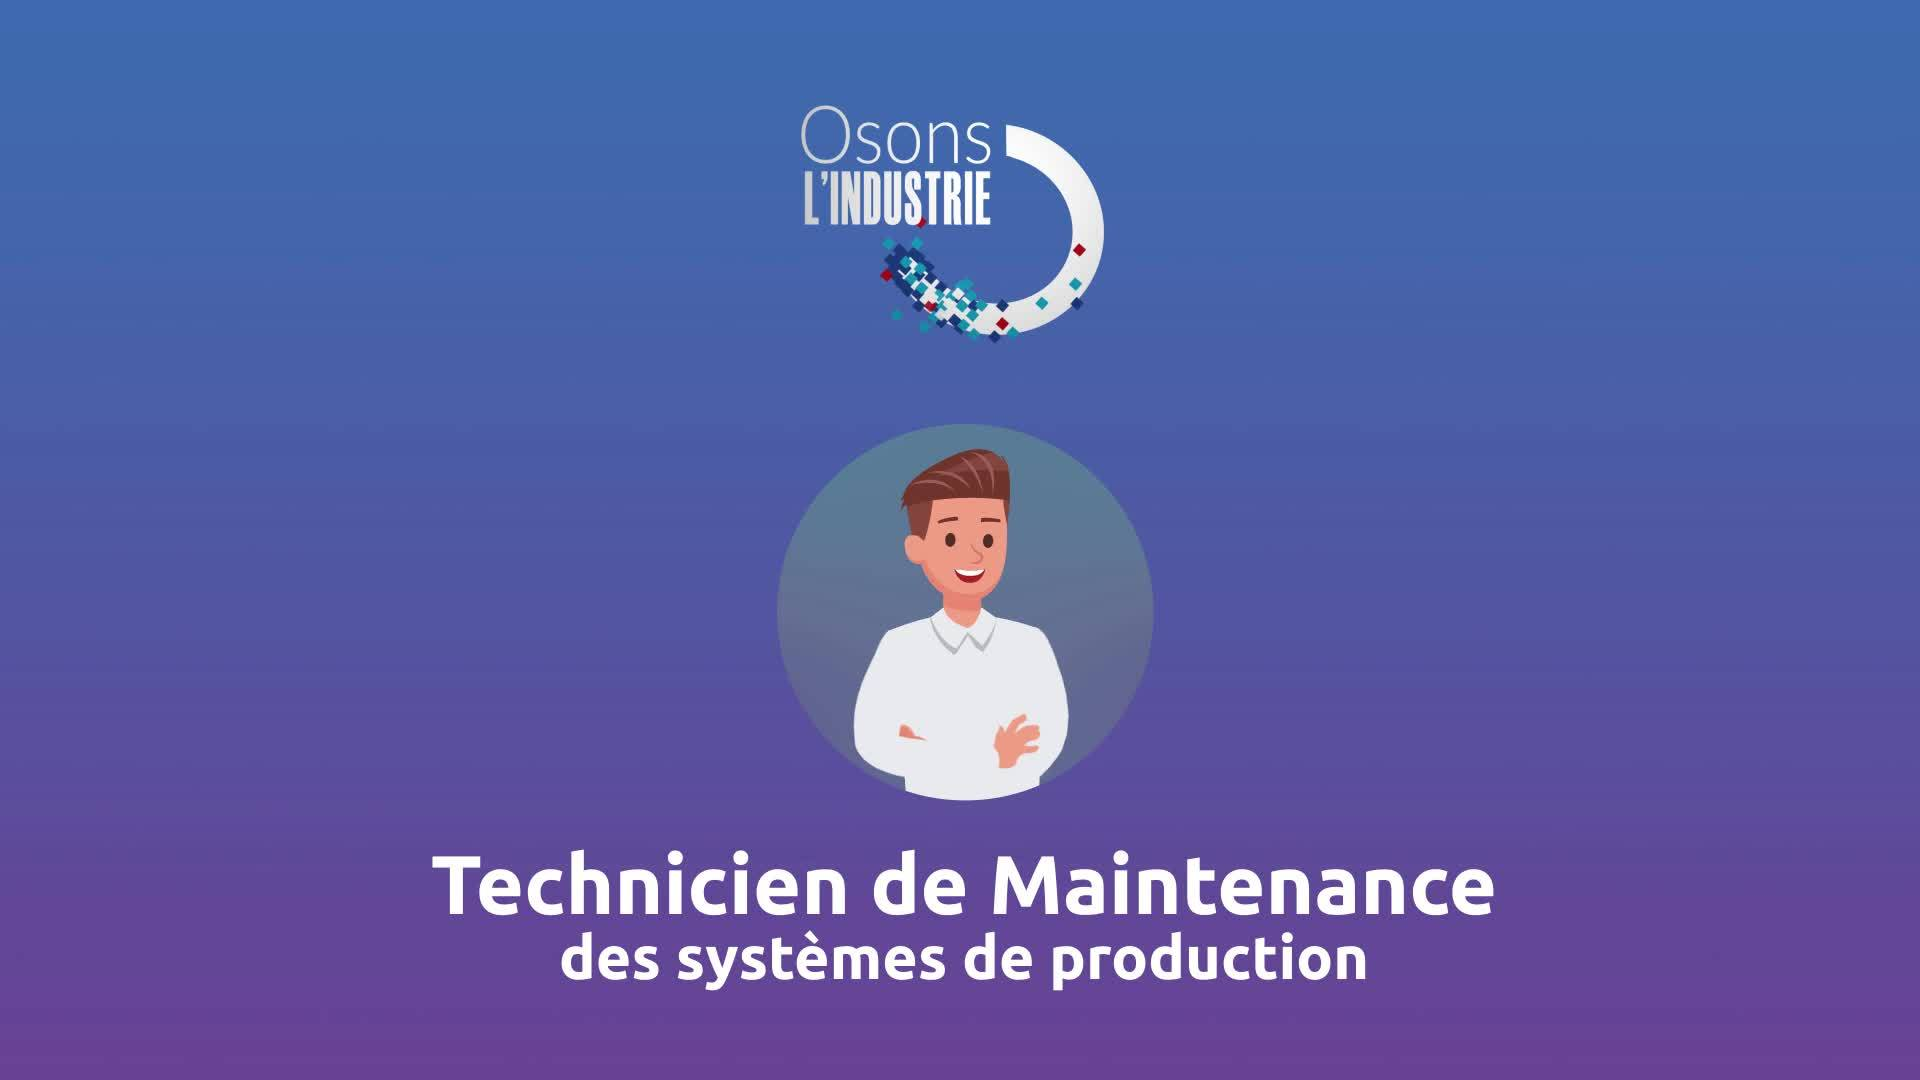 Technicien de maintenance dans l'industrie thumbnail